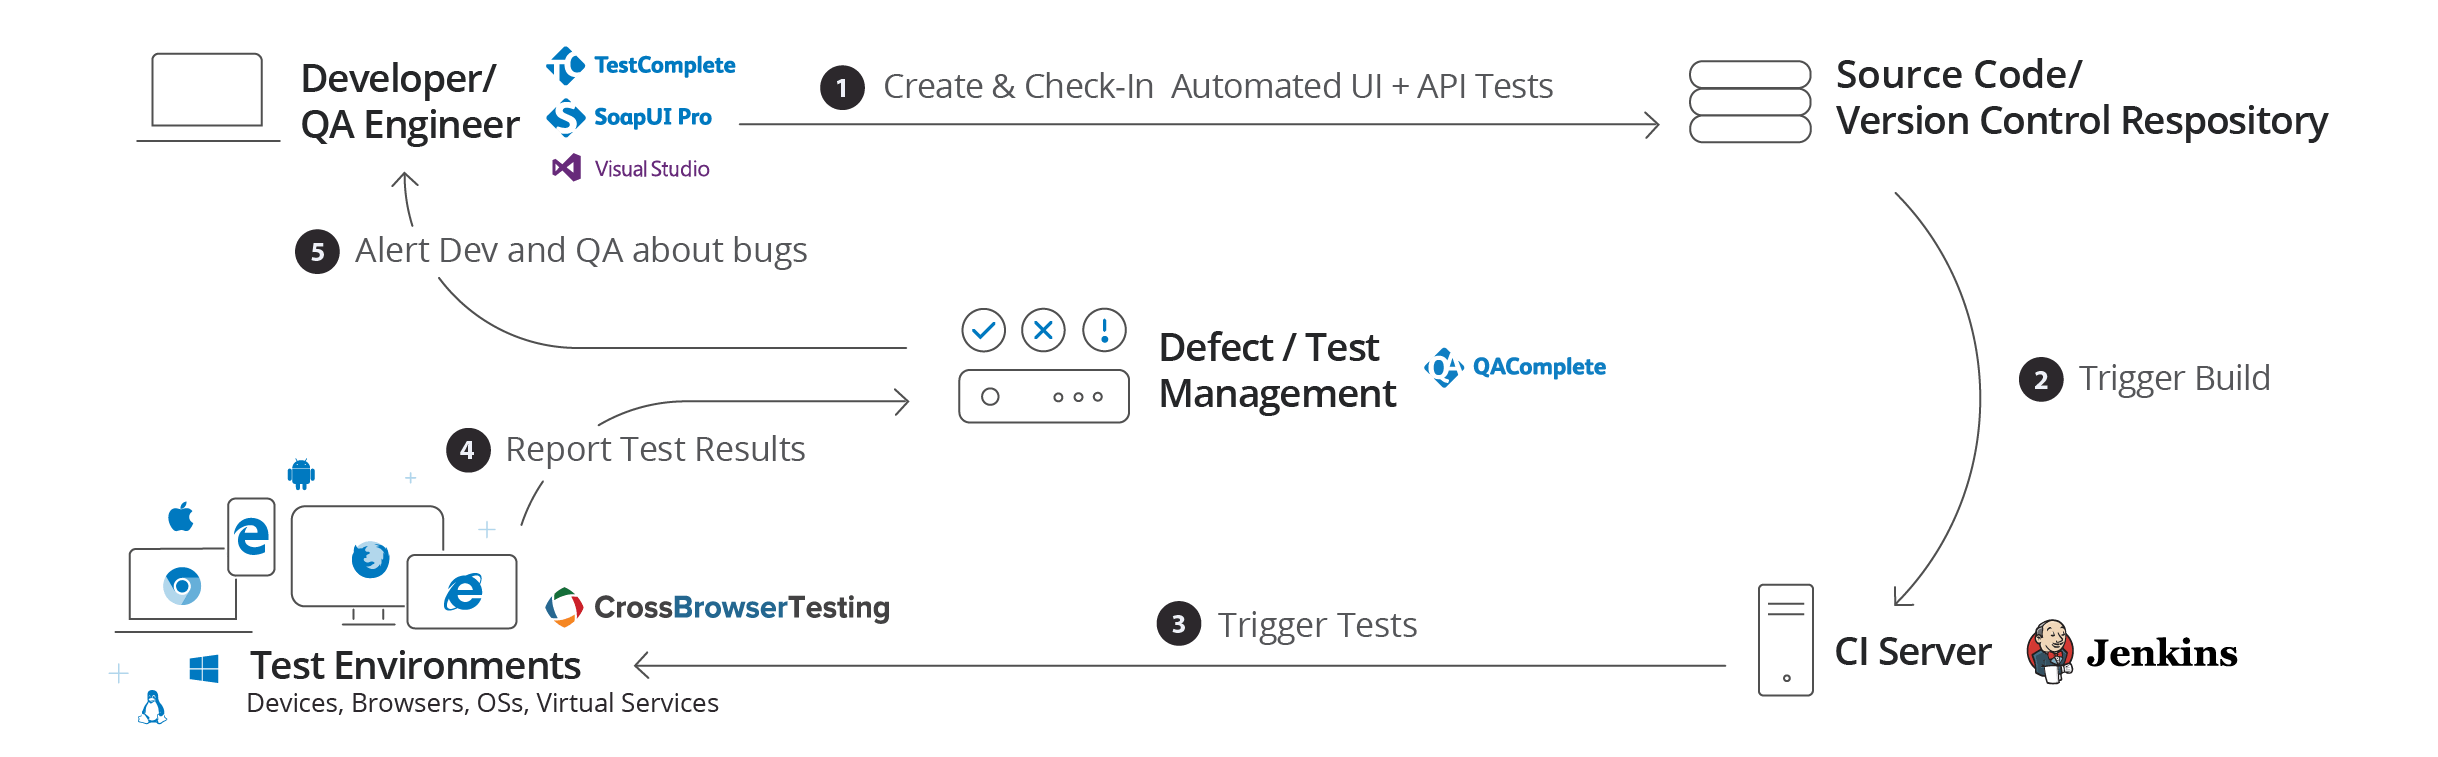 Continuous Testing Made Easy | TestComplete